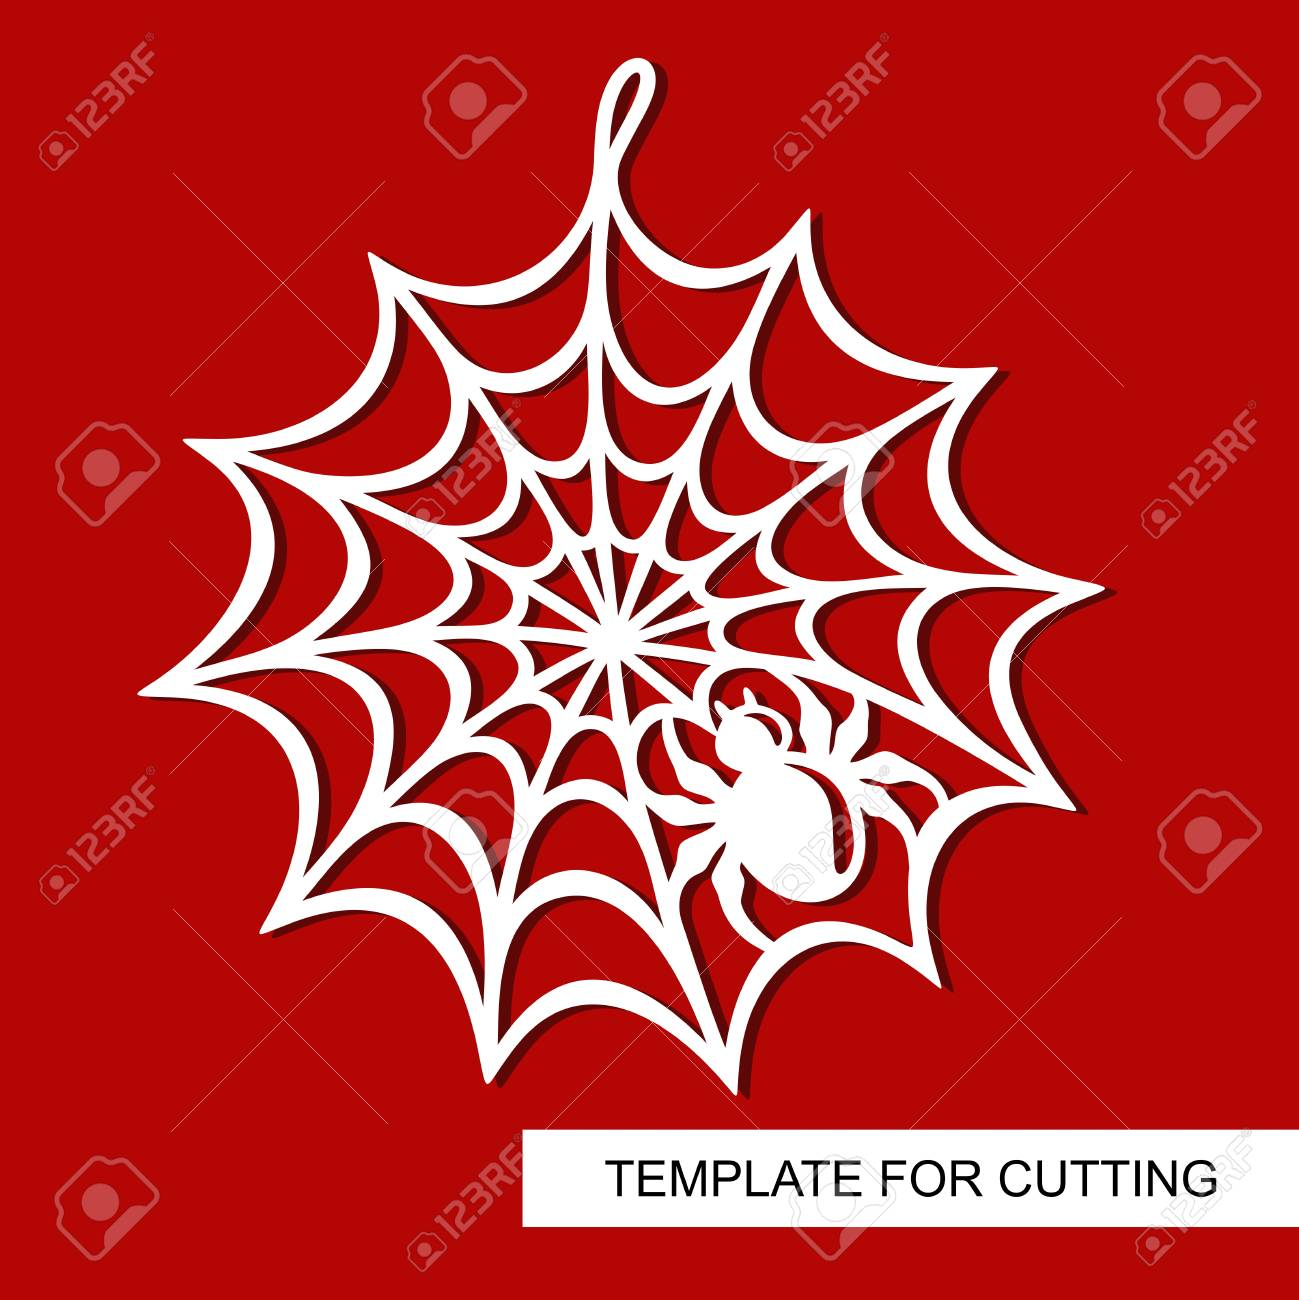 decoration for halloween spiderweb template for laser cutting